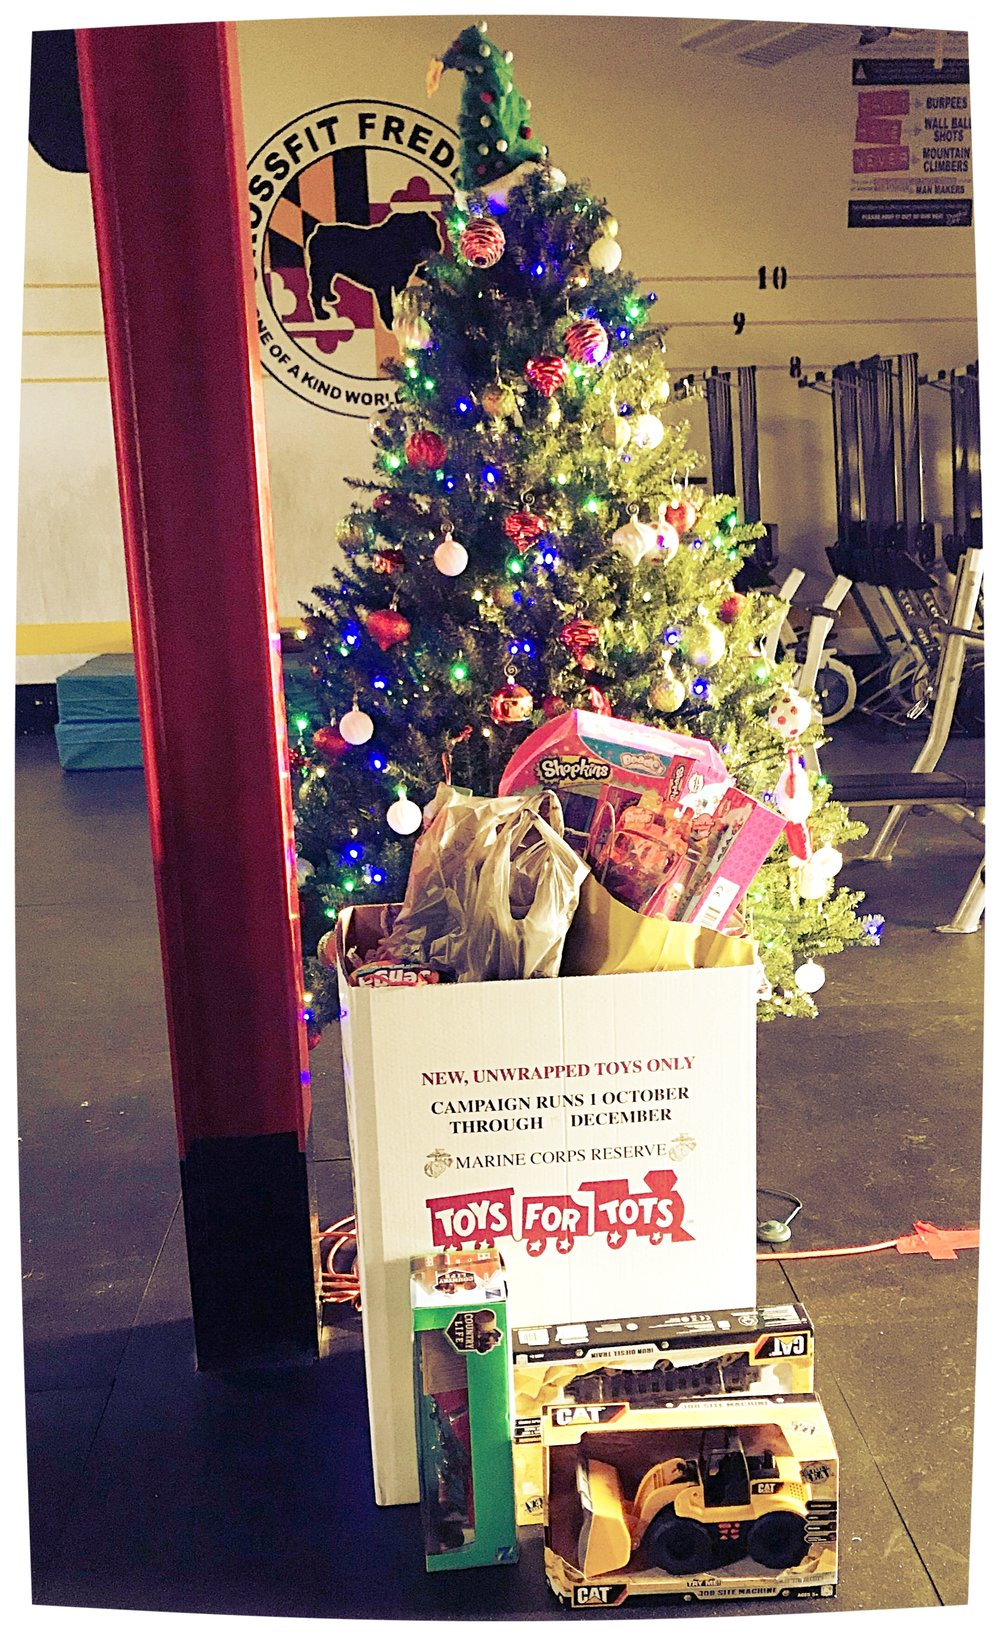 The box is beginning to overflow! Only 2 days remaining to donate to our Toys for Tots campaign!!! Deadline is December 14th at 8PM.